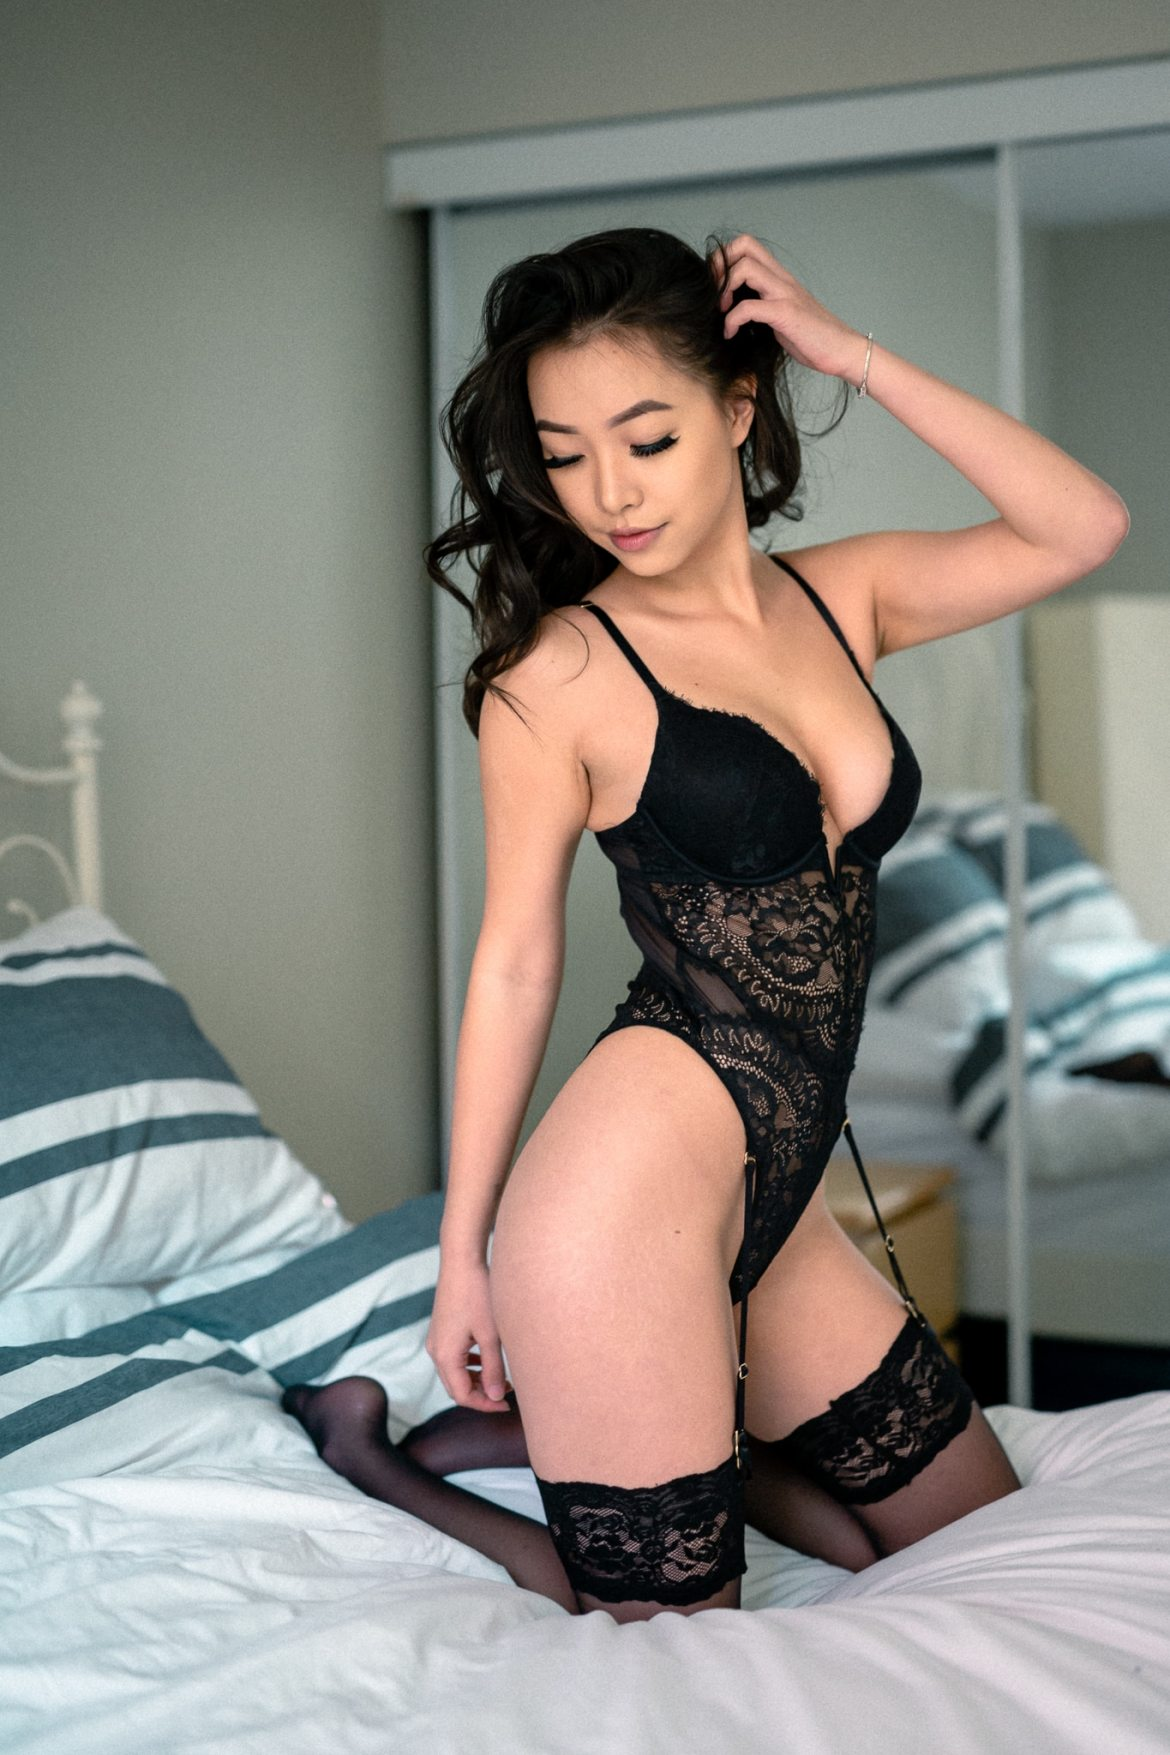 boudoir photographer, photoshoot, bed, beauty, bodysuit, mirror, photoshop, lightroom, camera raw, edited photo, photo processing, after luxe preset